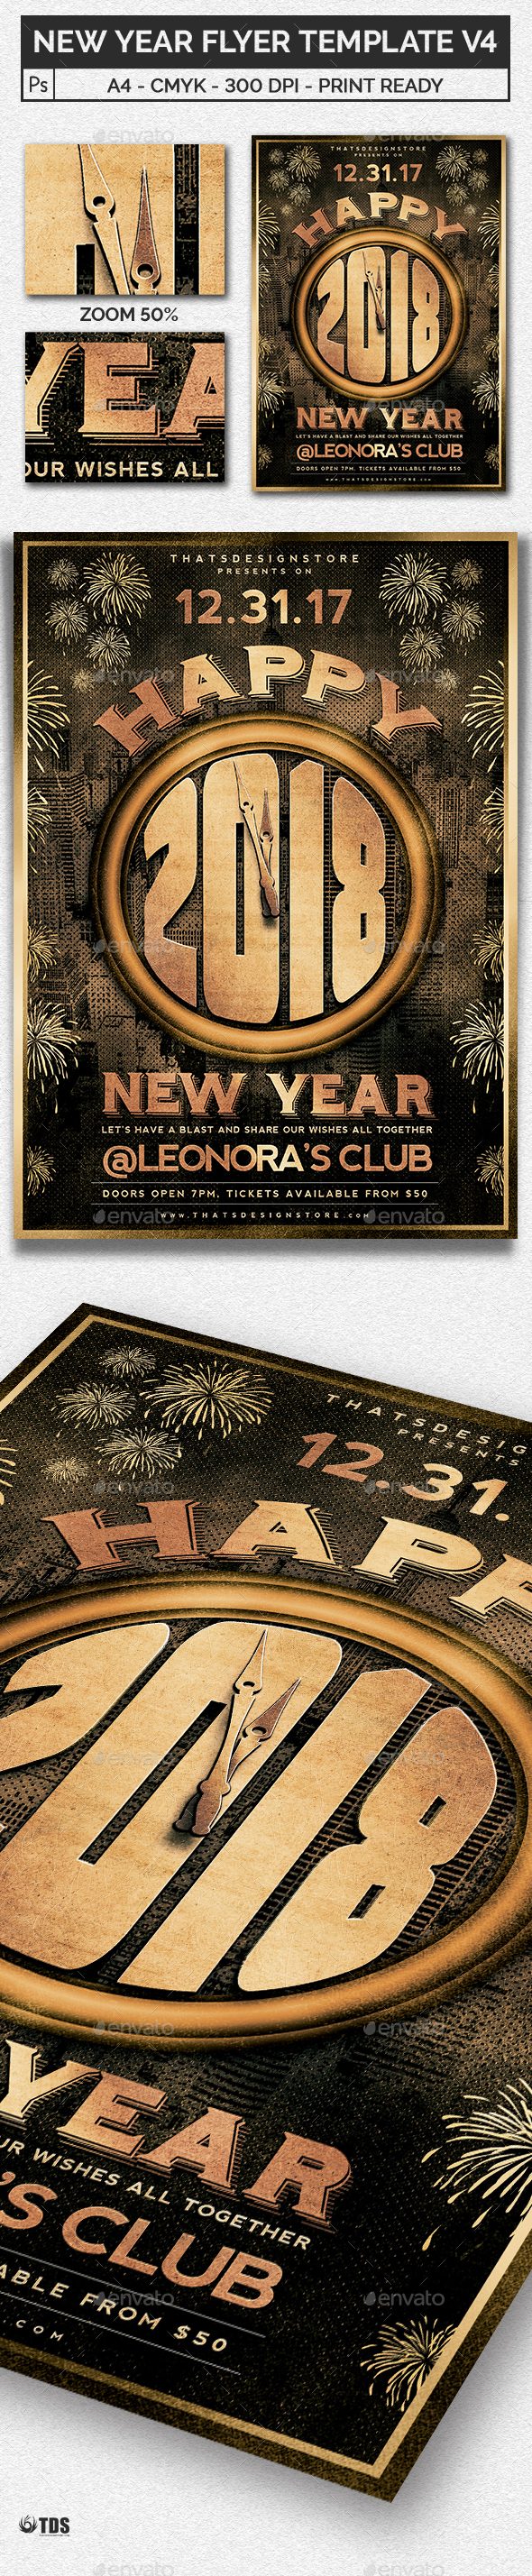 New Year Flyer Template V4   Clubs U0026 Parties Events